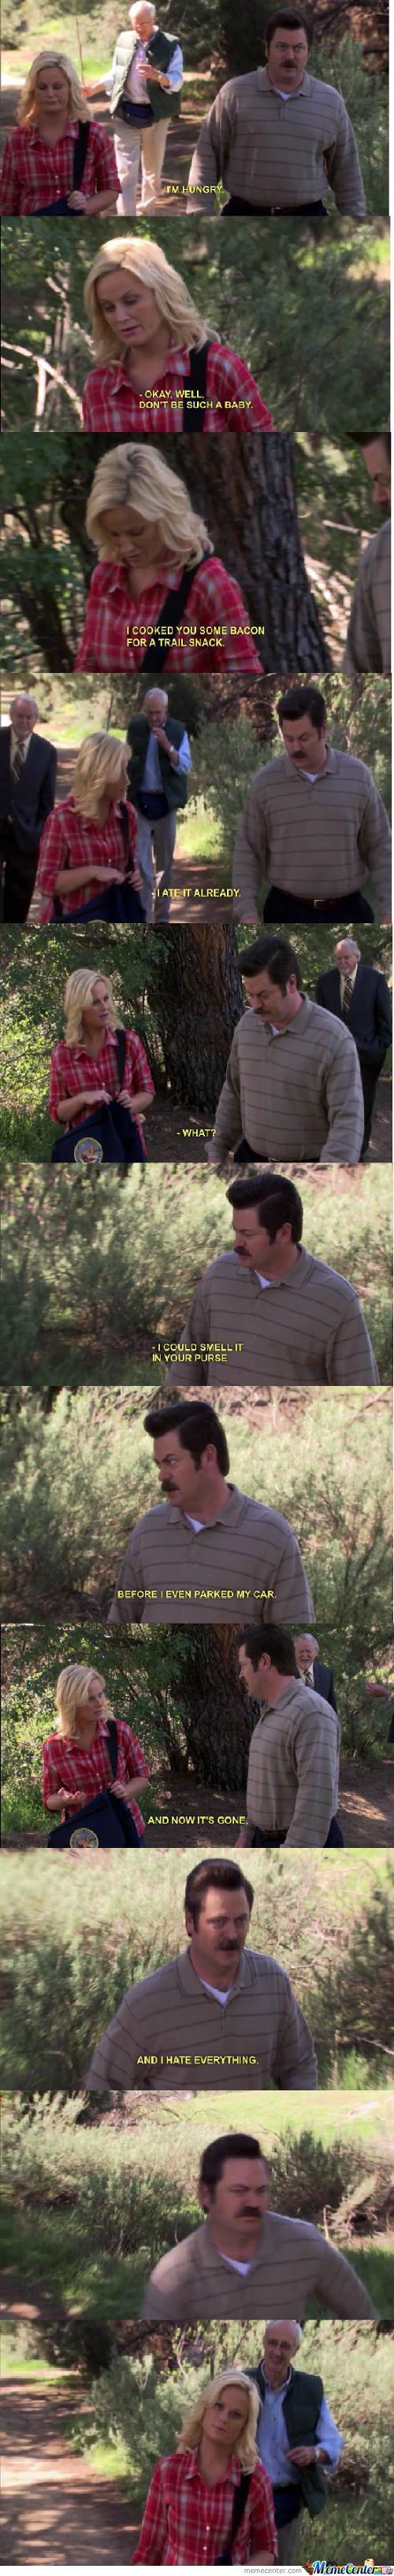 Just Ron Swanson Being Ron Swanson